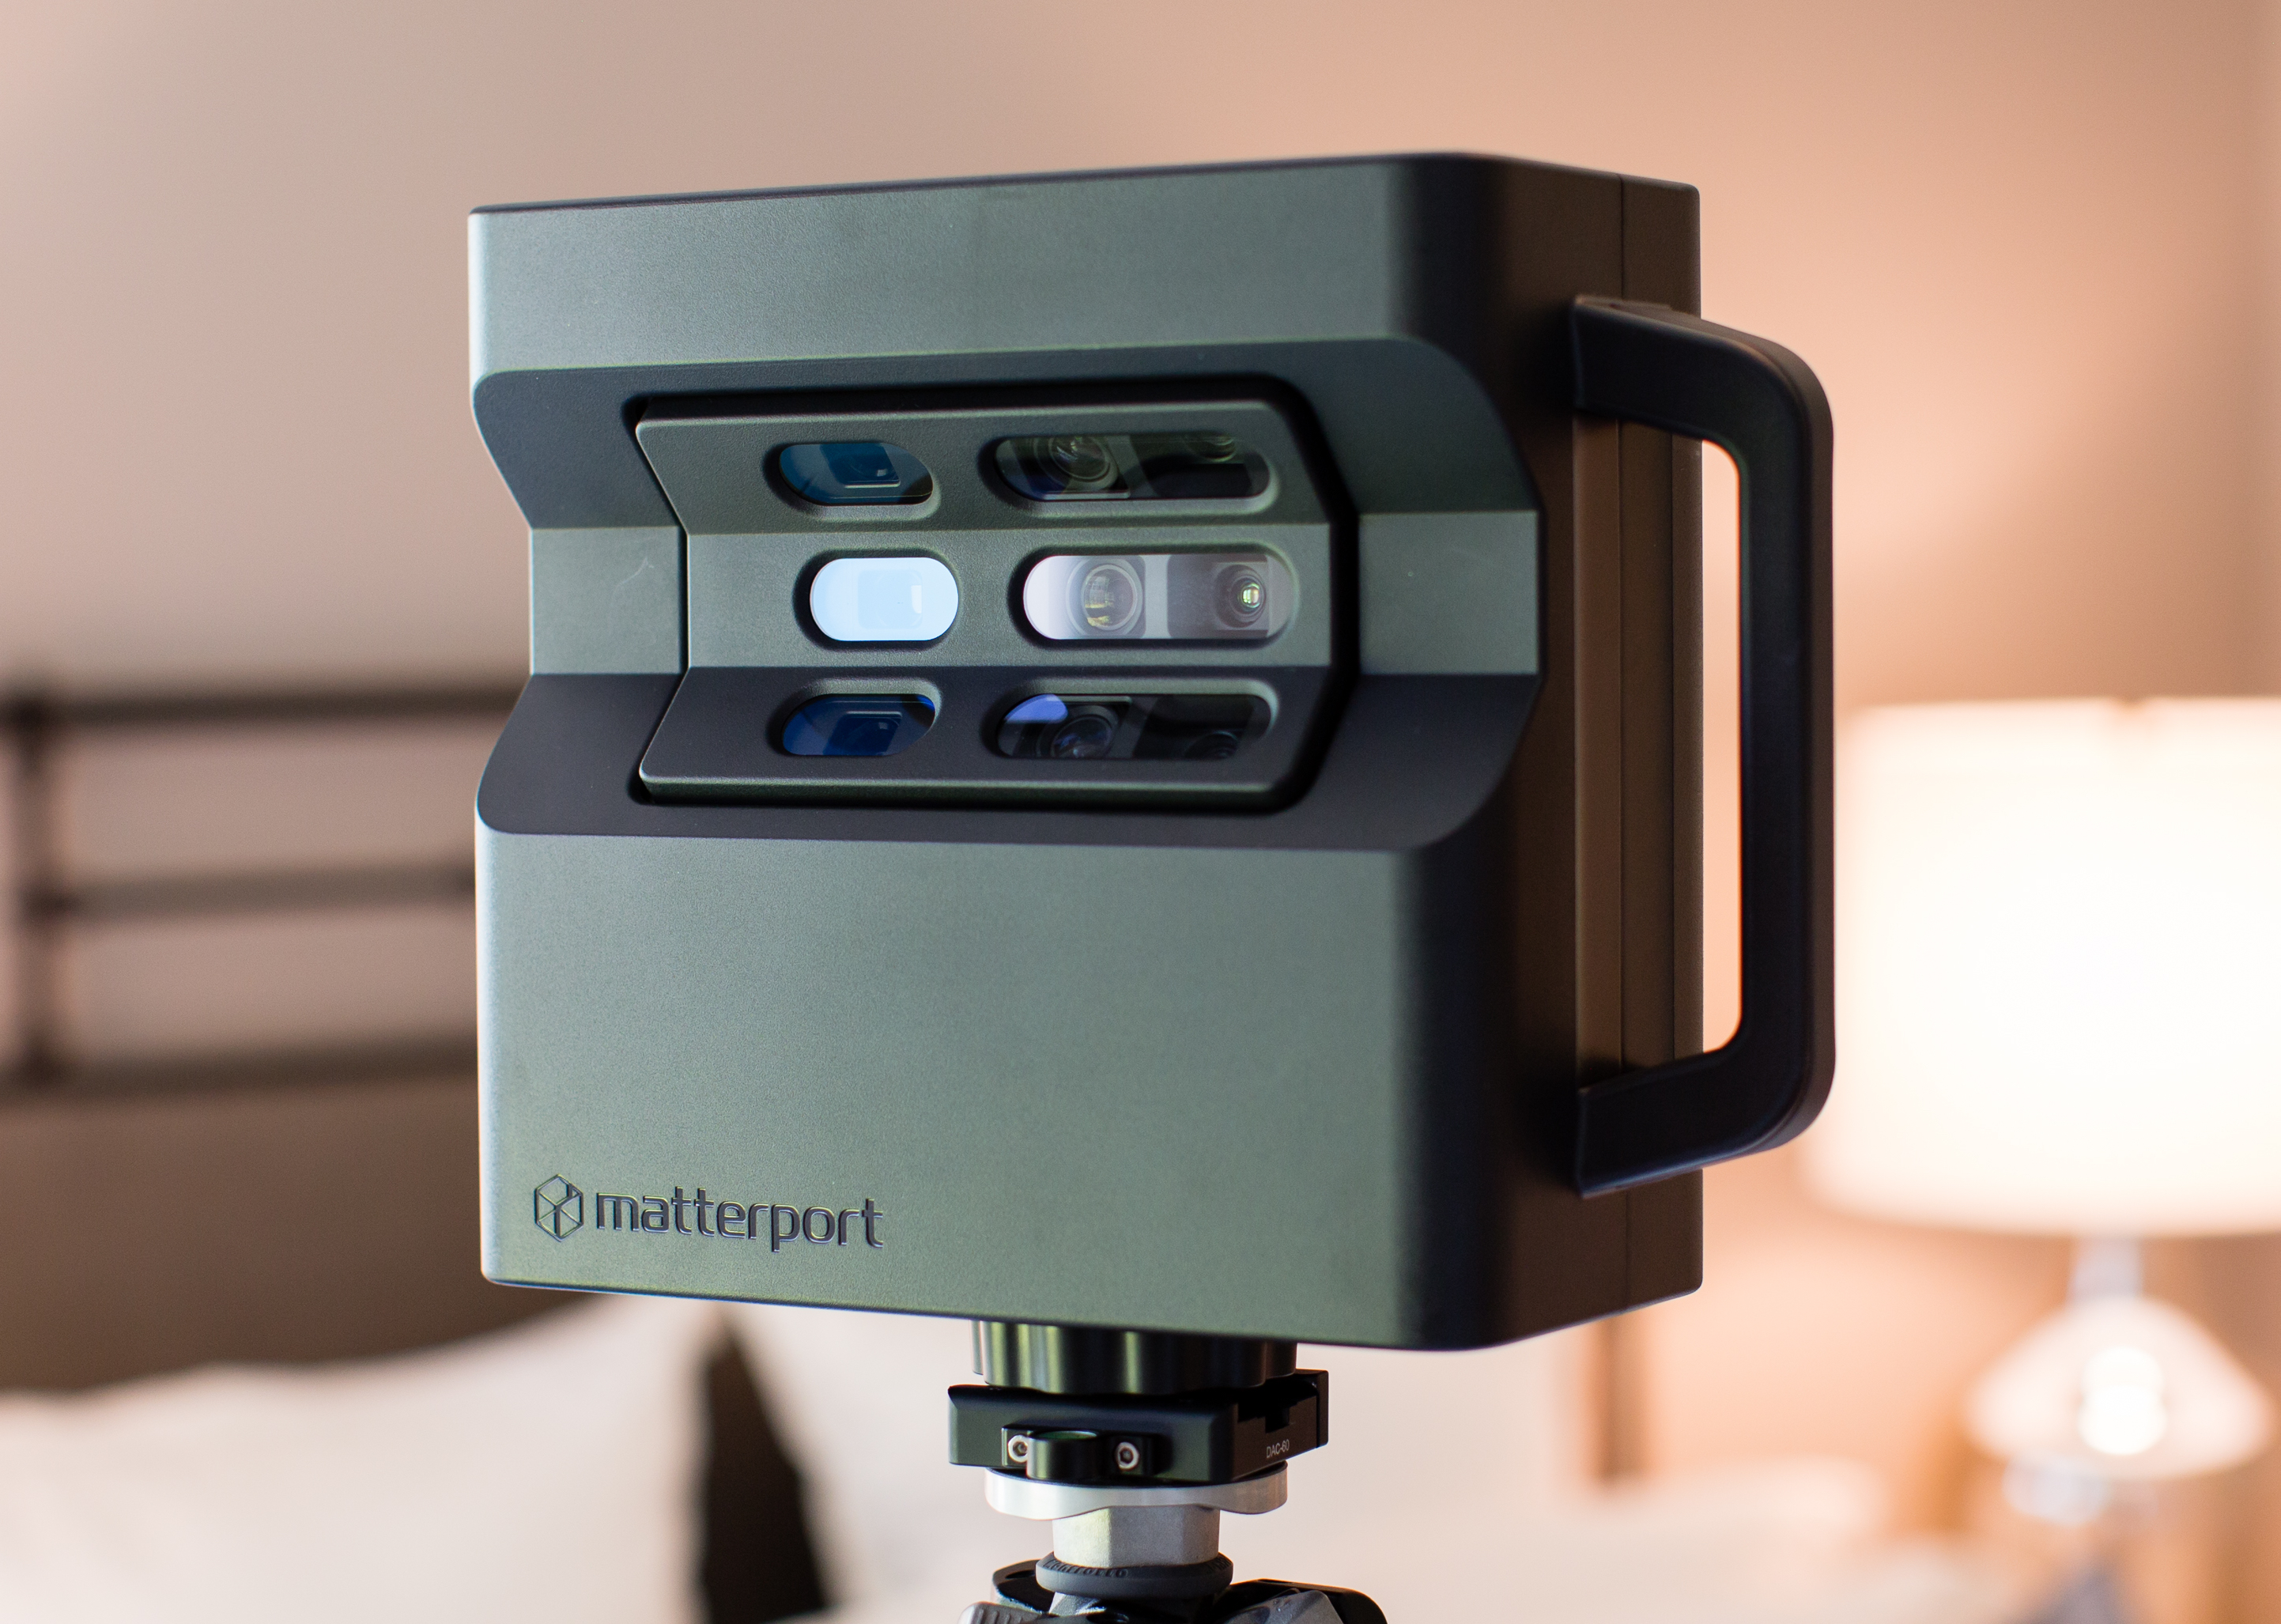 Simple scanning with simple pricing for one of the best cameras for real estate.